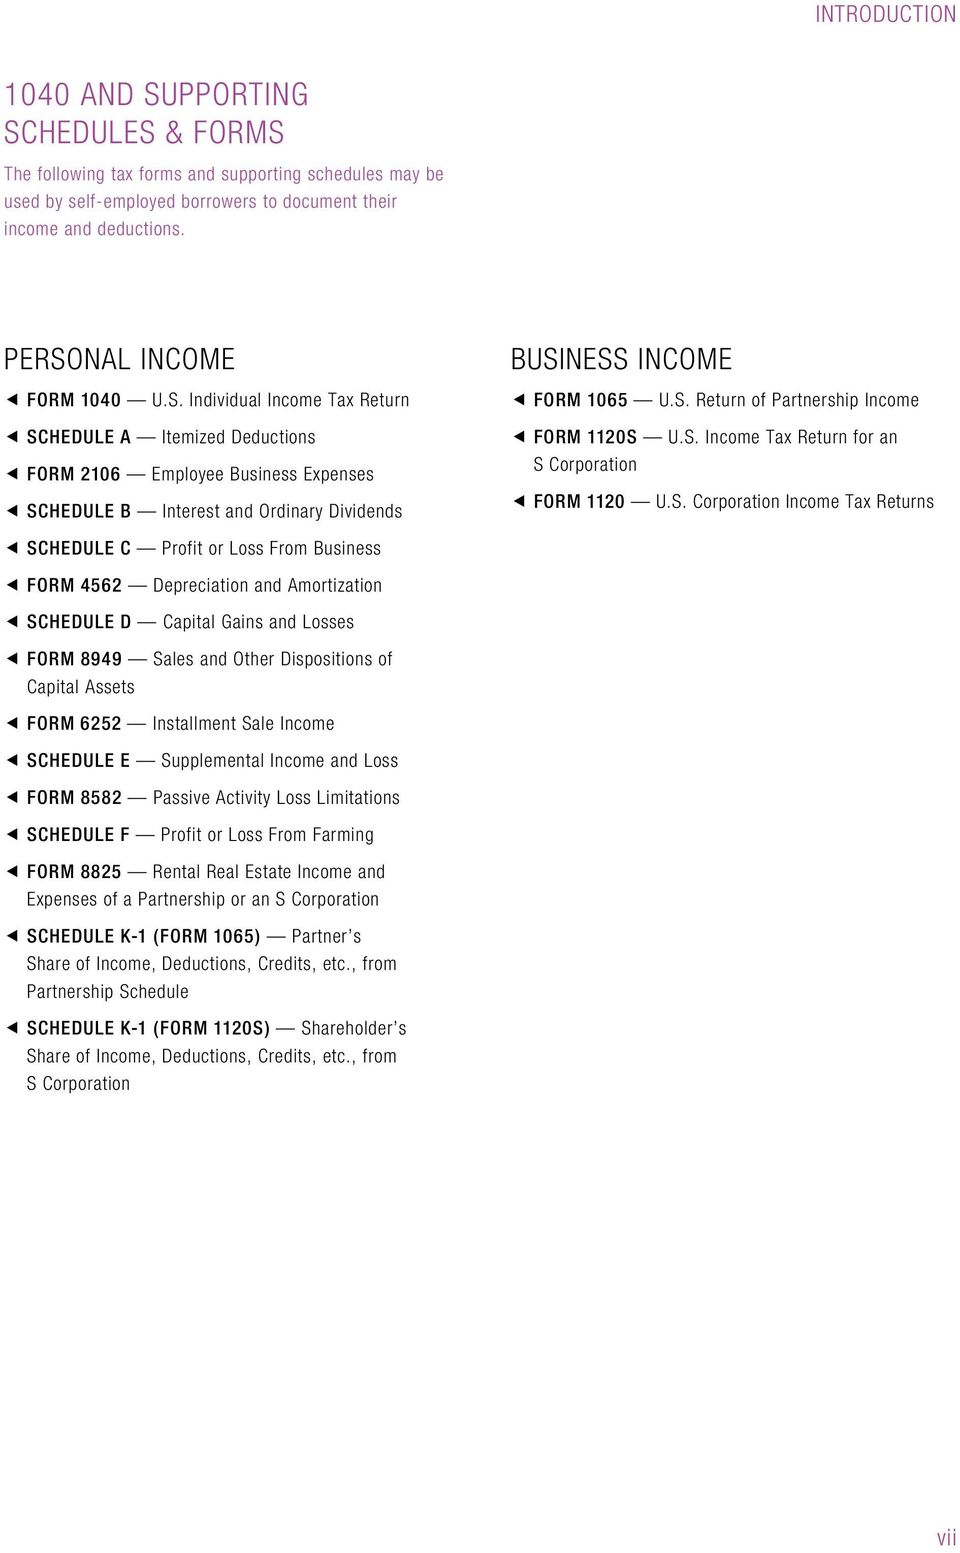 Evaluating The Self Employed Borrower Pdf